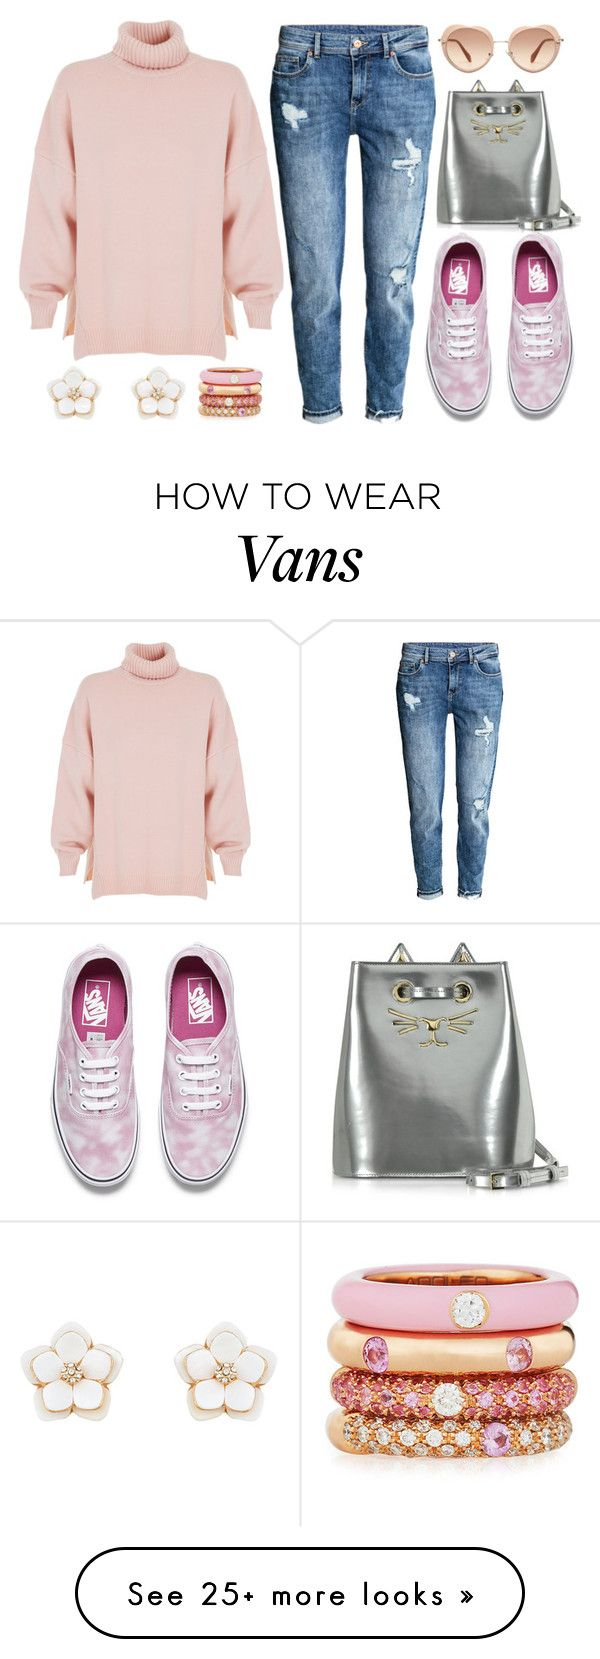 """Cozy Cashmere Sweaters"" by joslynaurora on Polyvore featuring TIBI, H&M, Vans, Charlotte Olympia, Accessorize, Adolfo Courrier, Miu Miu, Sweater, sunglasses and sneakers"